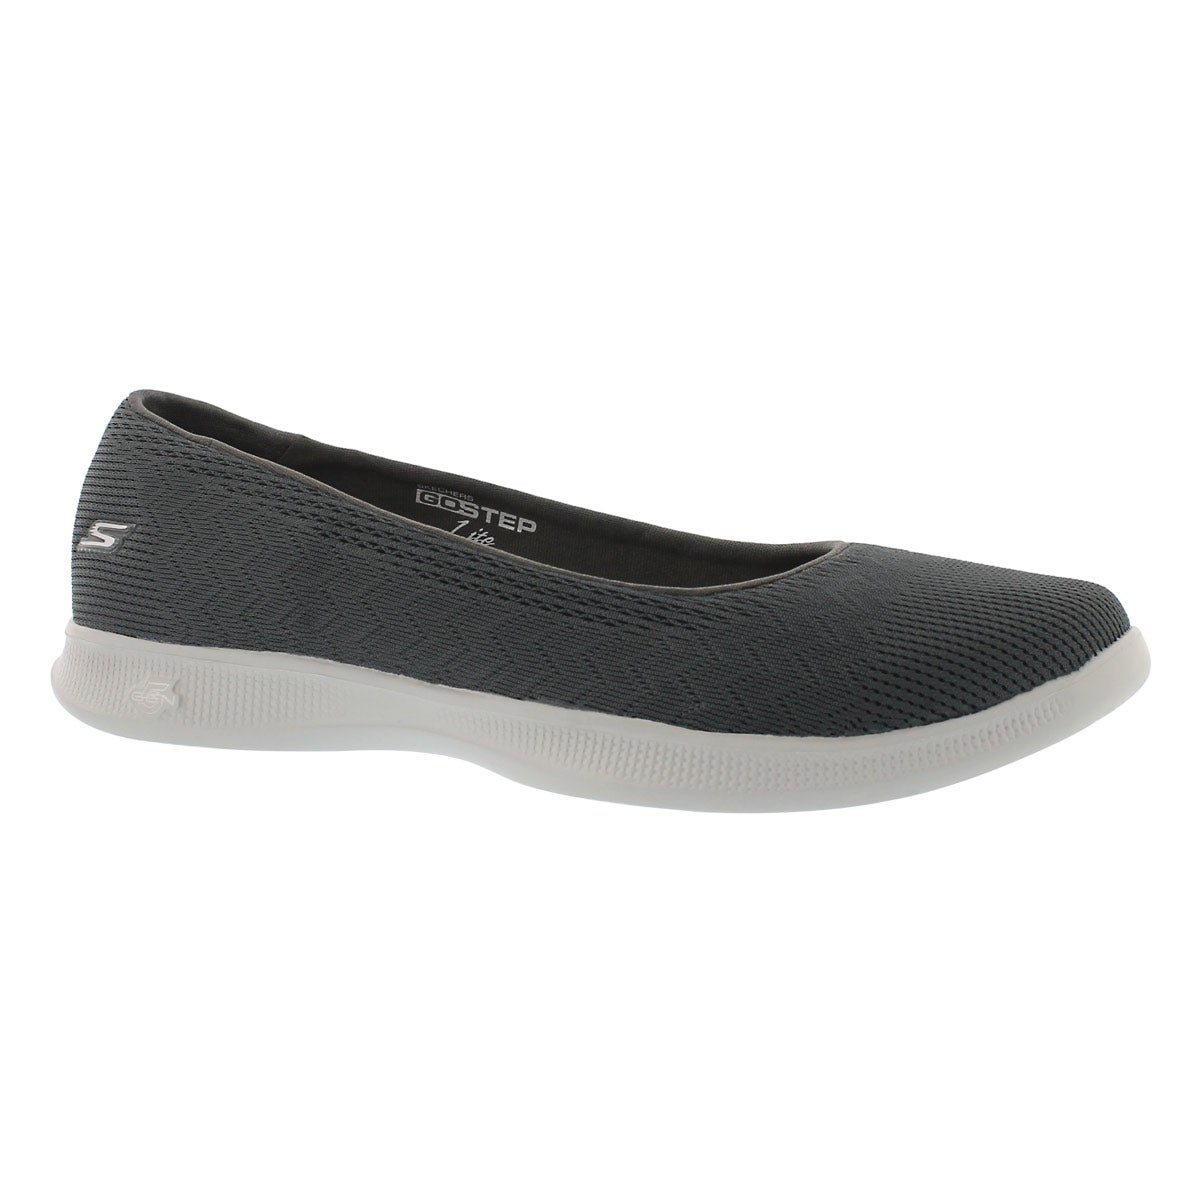 Women's GOstep LITE SOLACE charcoal flats